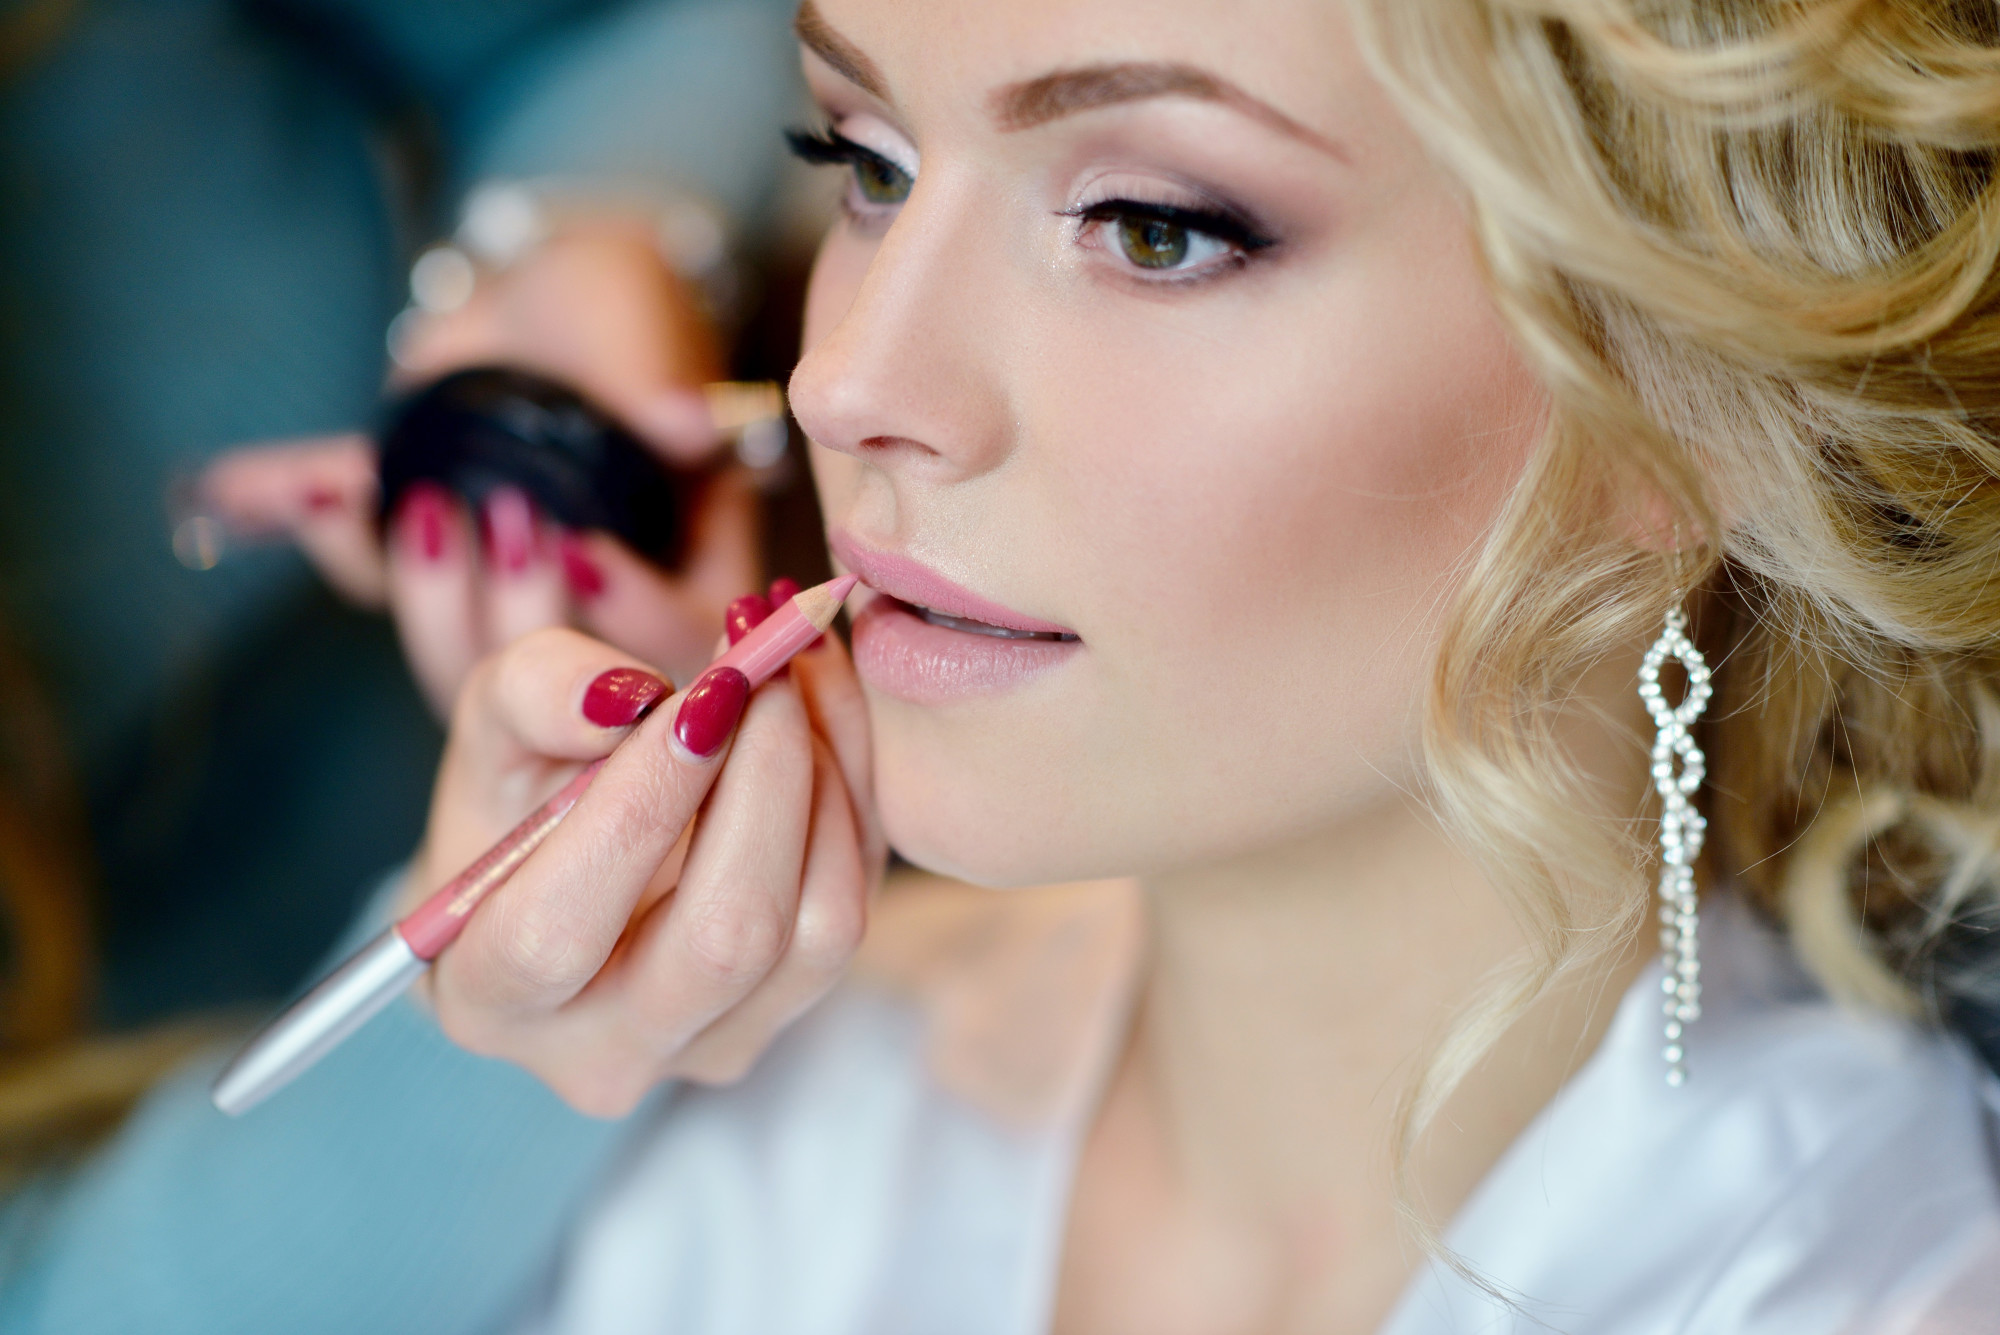 4 Flawless Summer Wedding Makeup Tips for Your Big Day